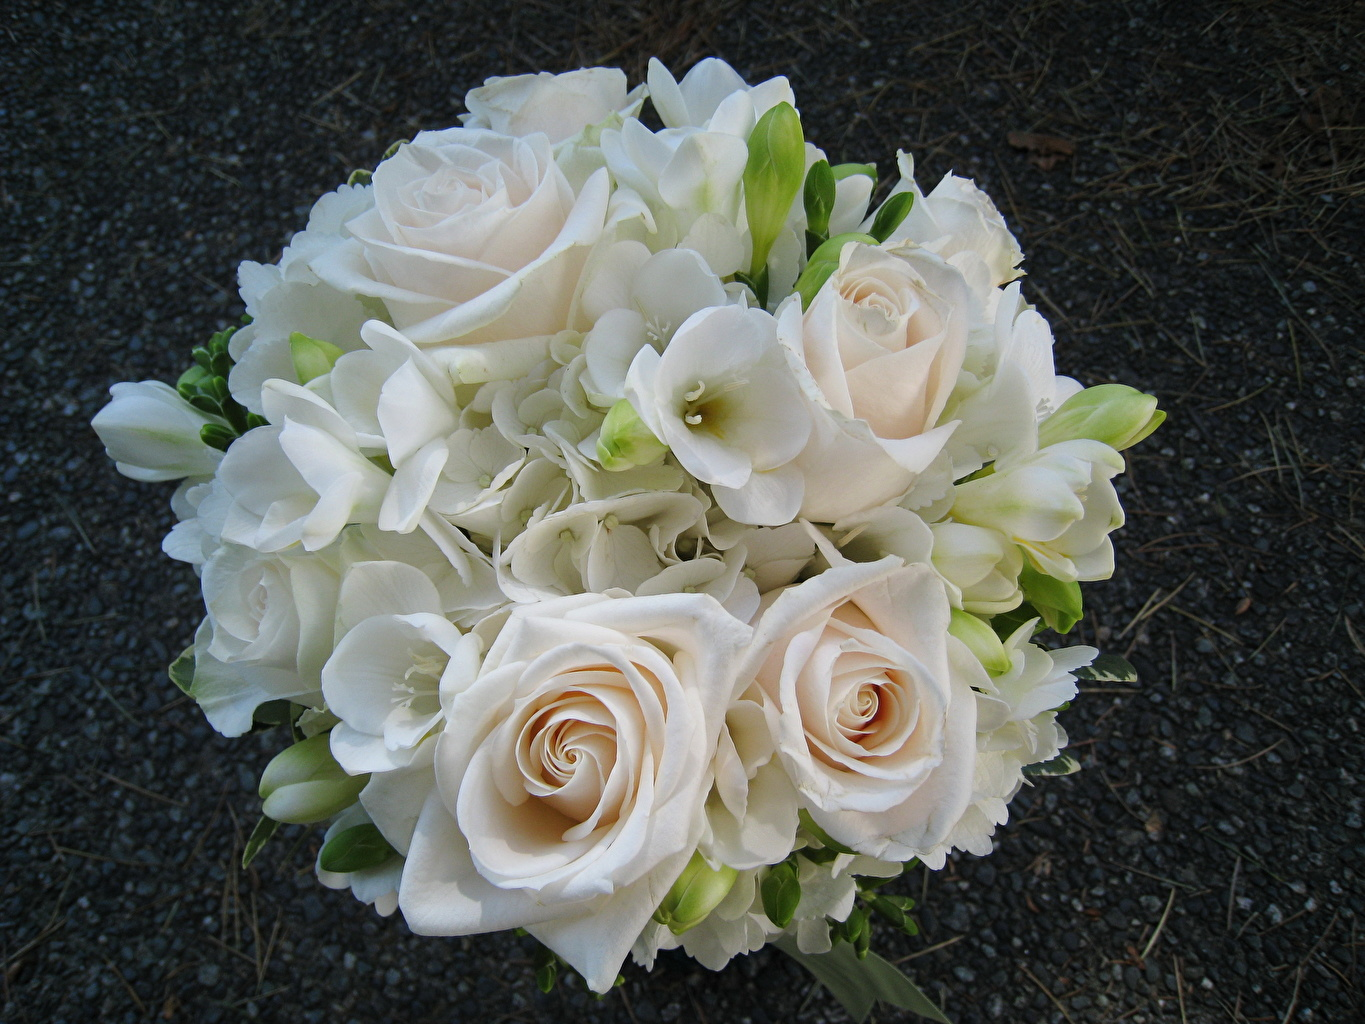 Image bouquet rose White flower Bouquets Roses Flowers